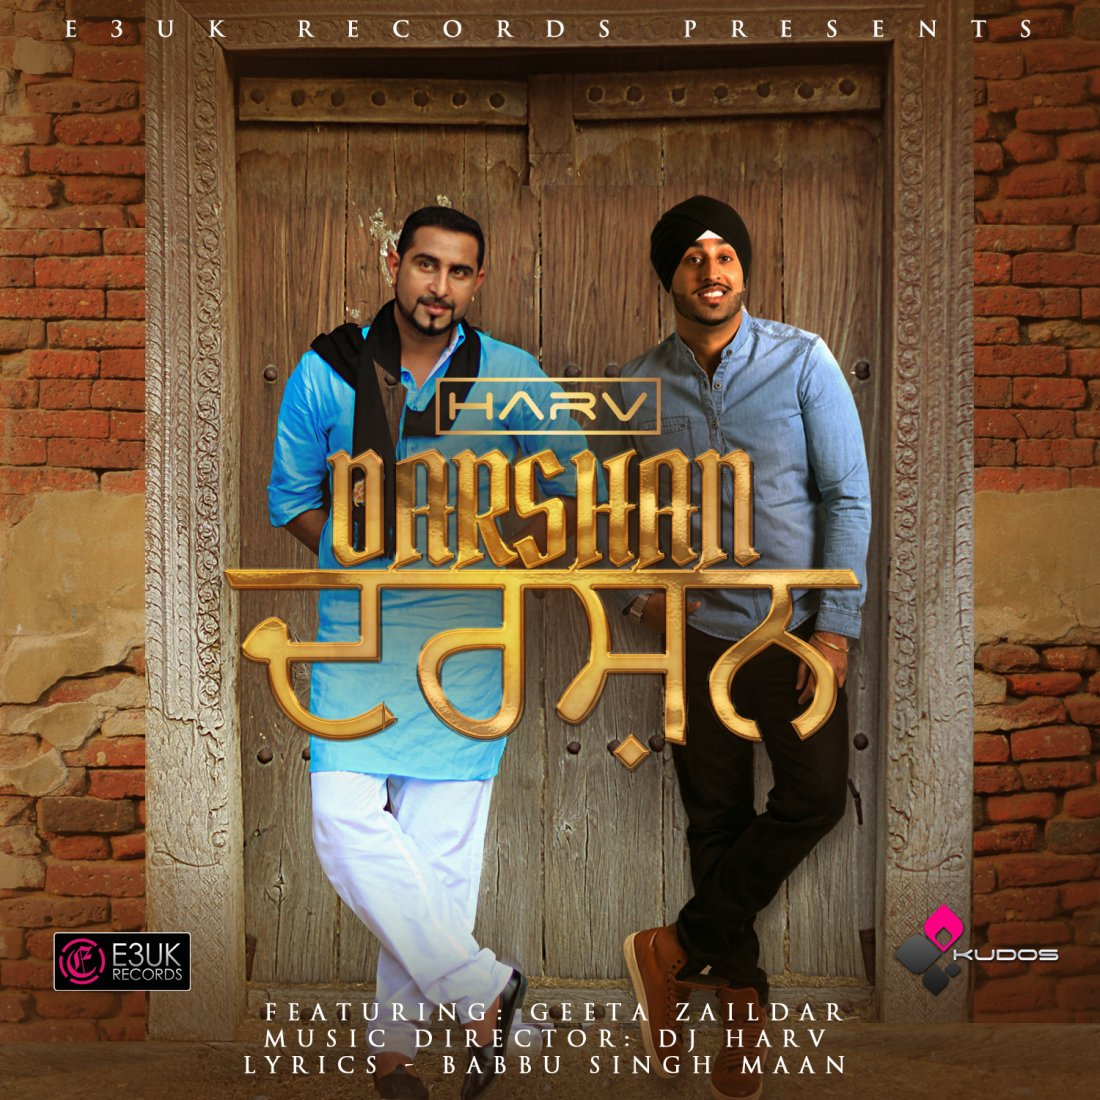 DJ Harv reaches the No1 spot with hit song 'Darshan'